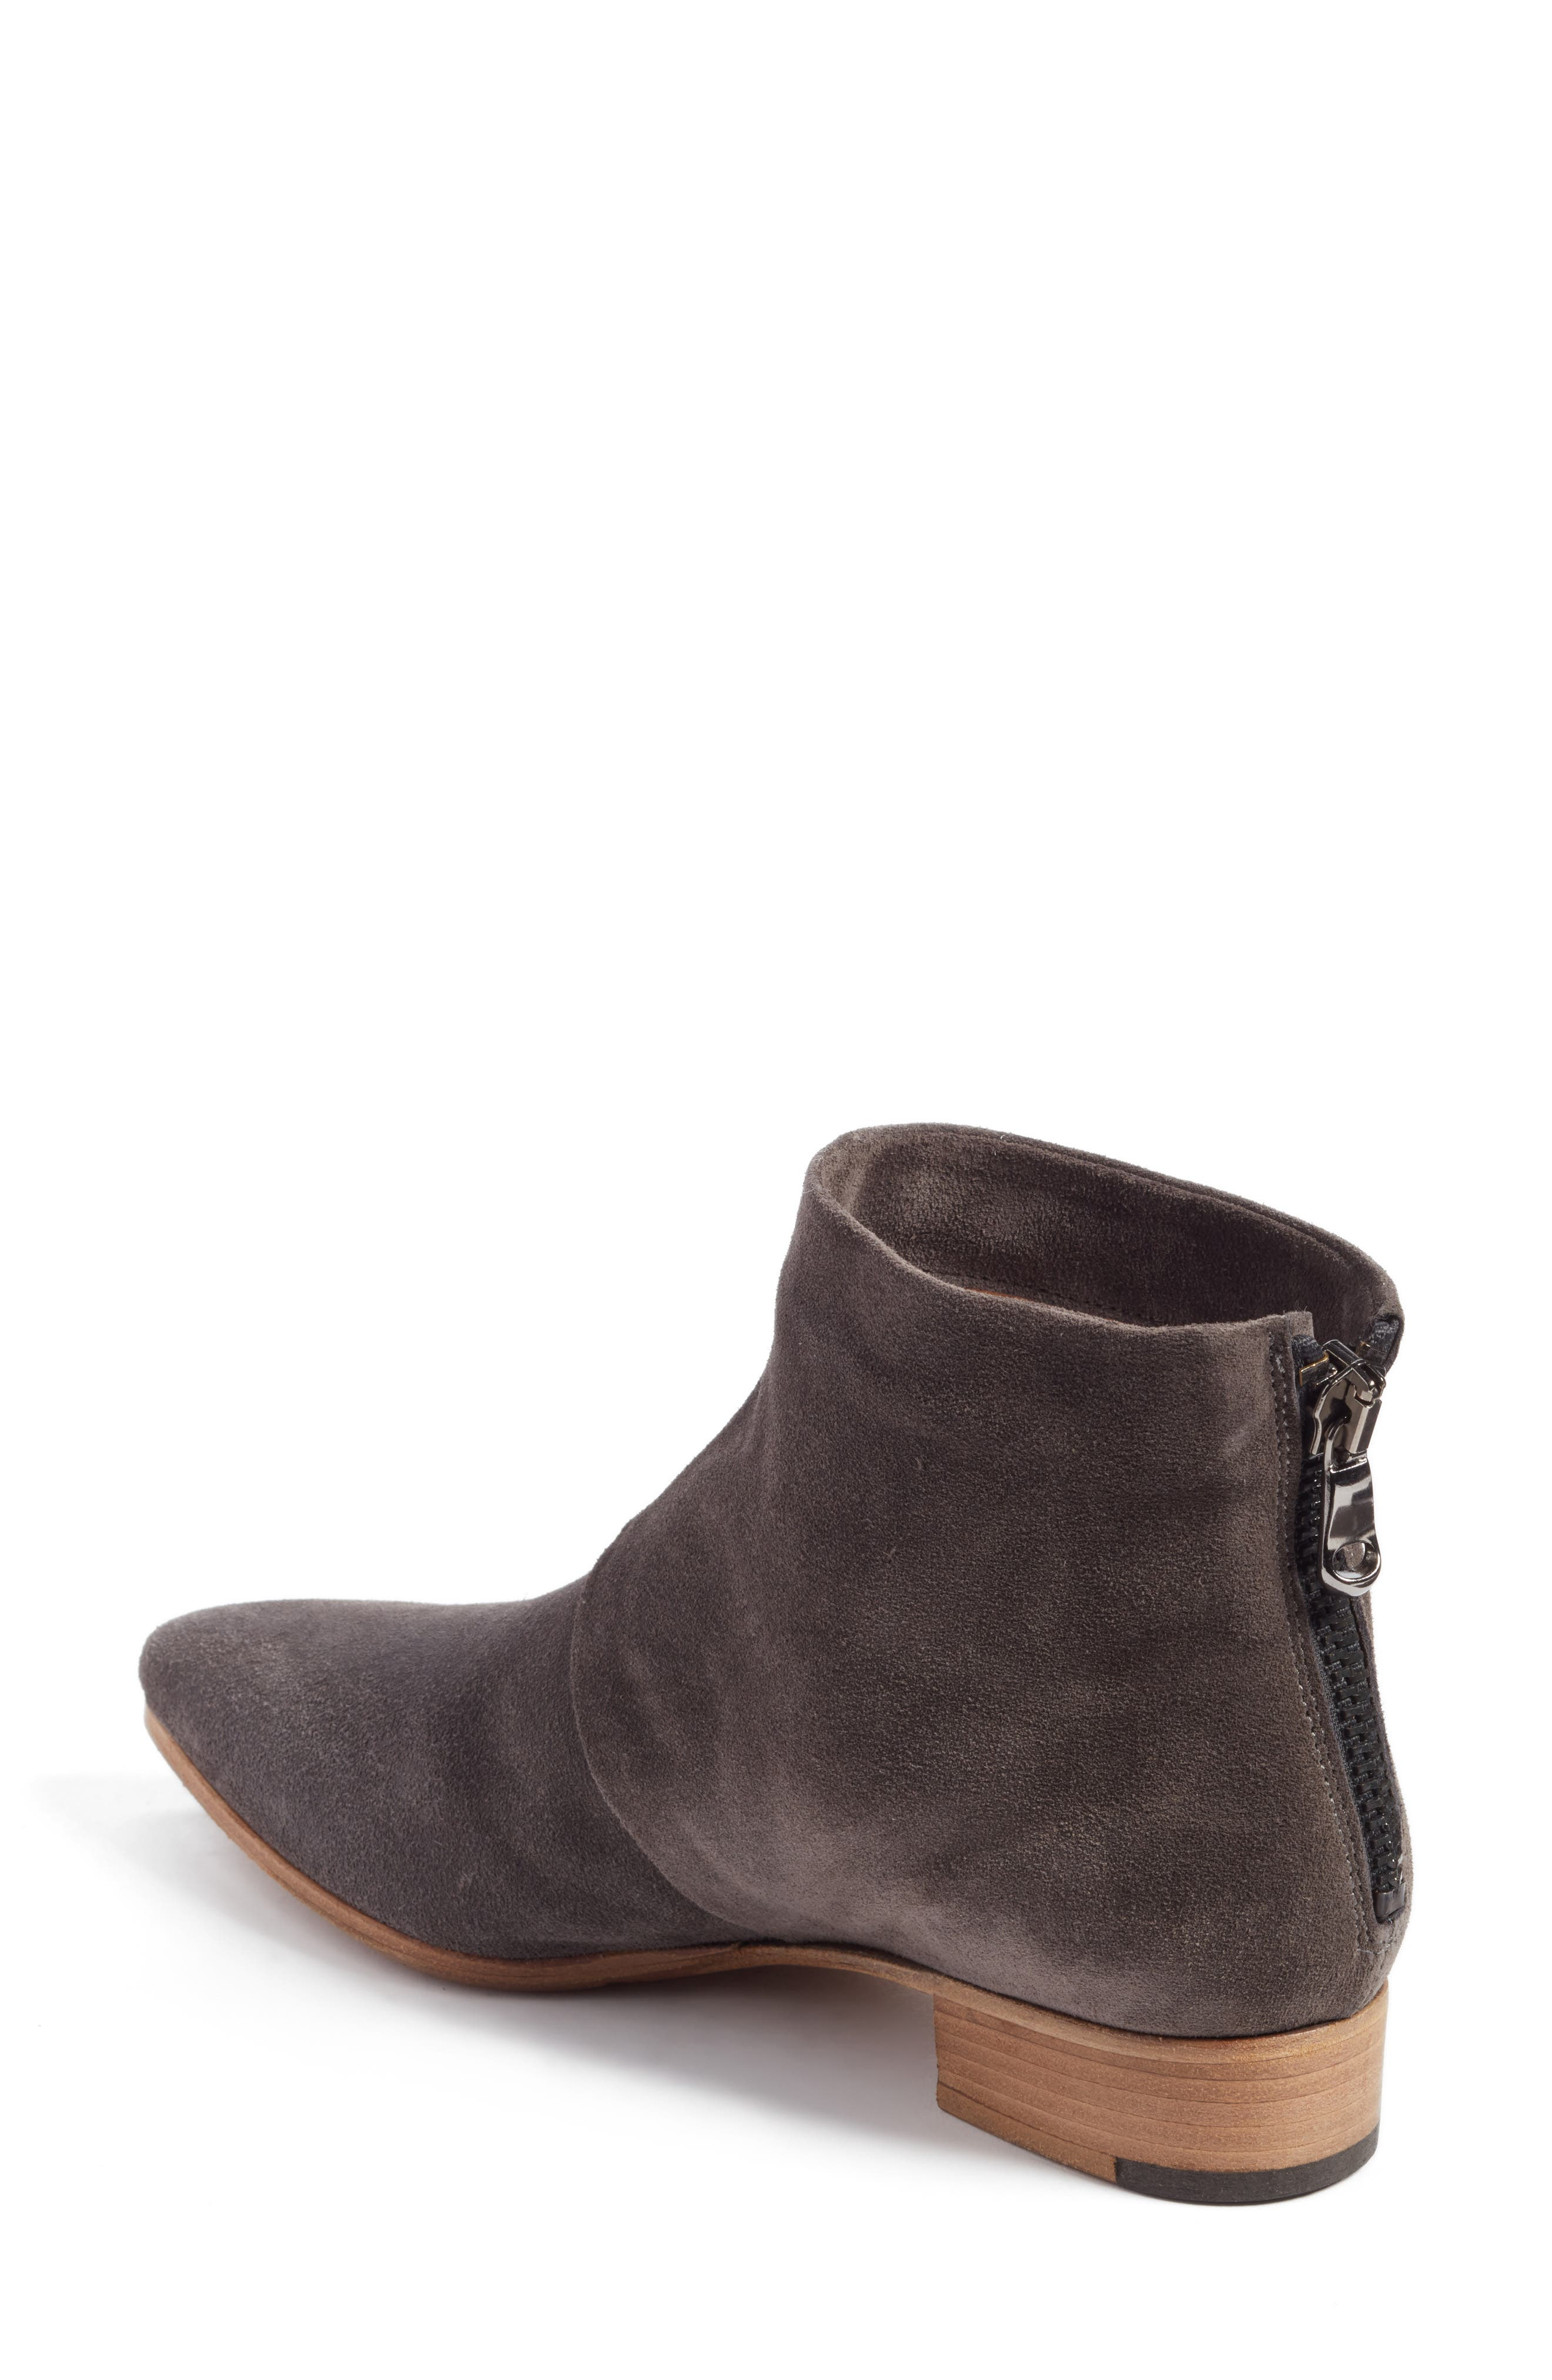 Bellina Mid Top Bootie,                             Alternate thumbnail 2, color,